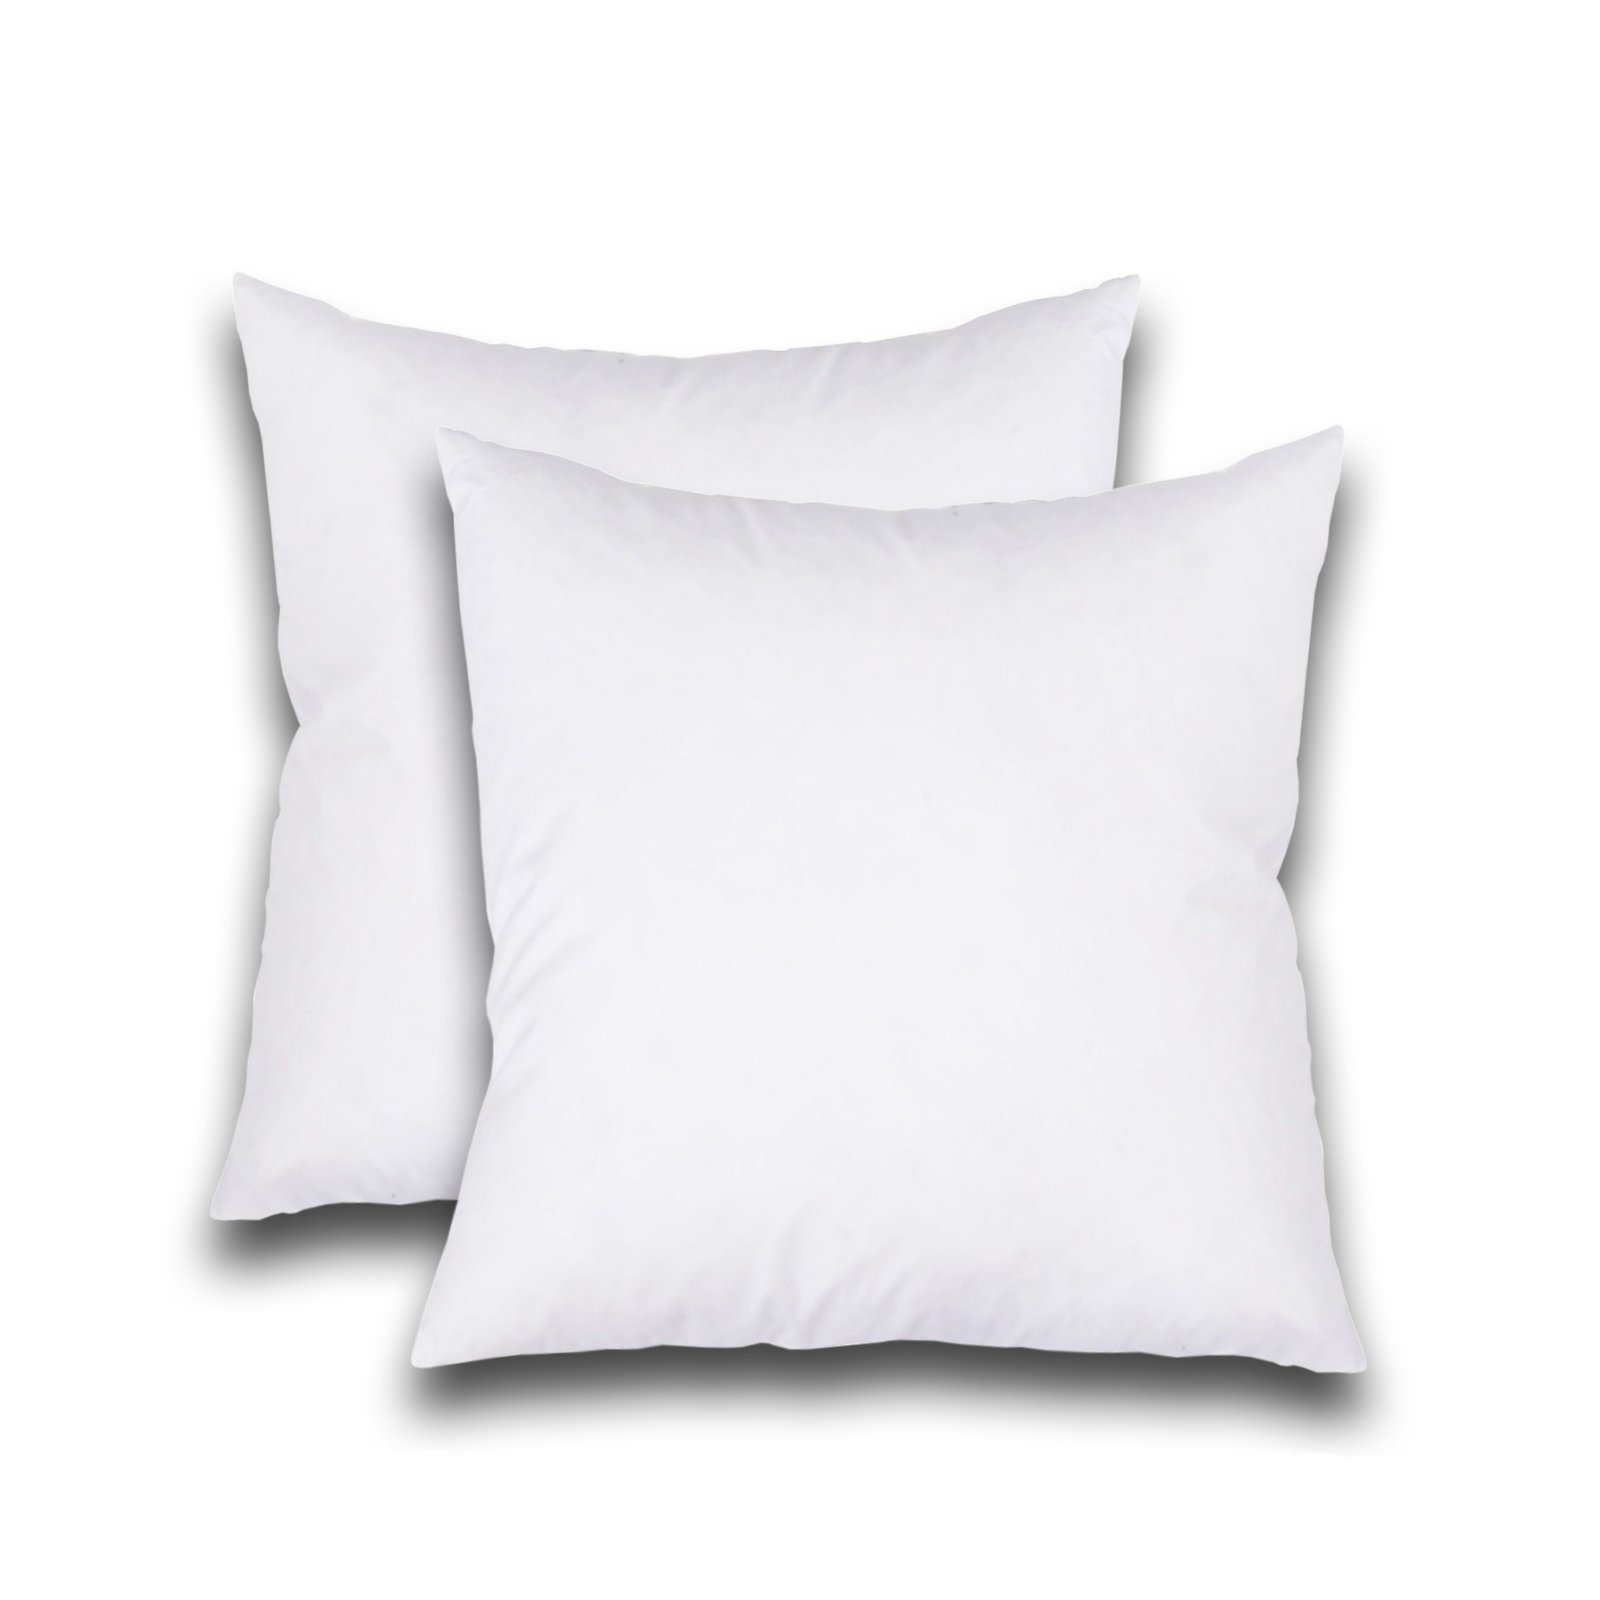 set of 2 decorative pillow inserts square pillow 20x20 inches sofa and bed pillow inserts throw pillow insert white